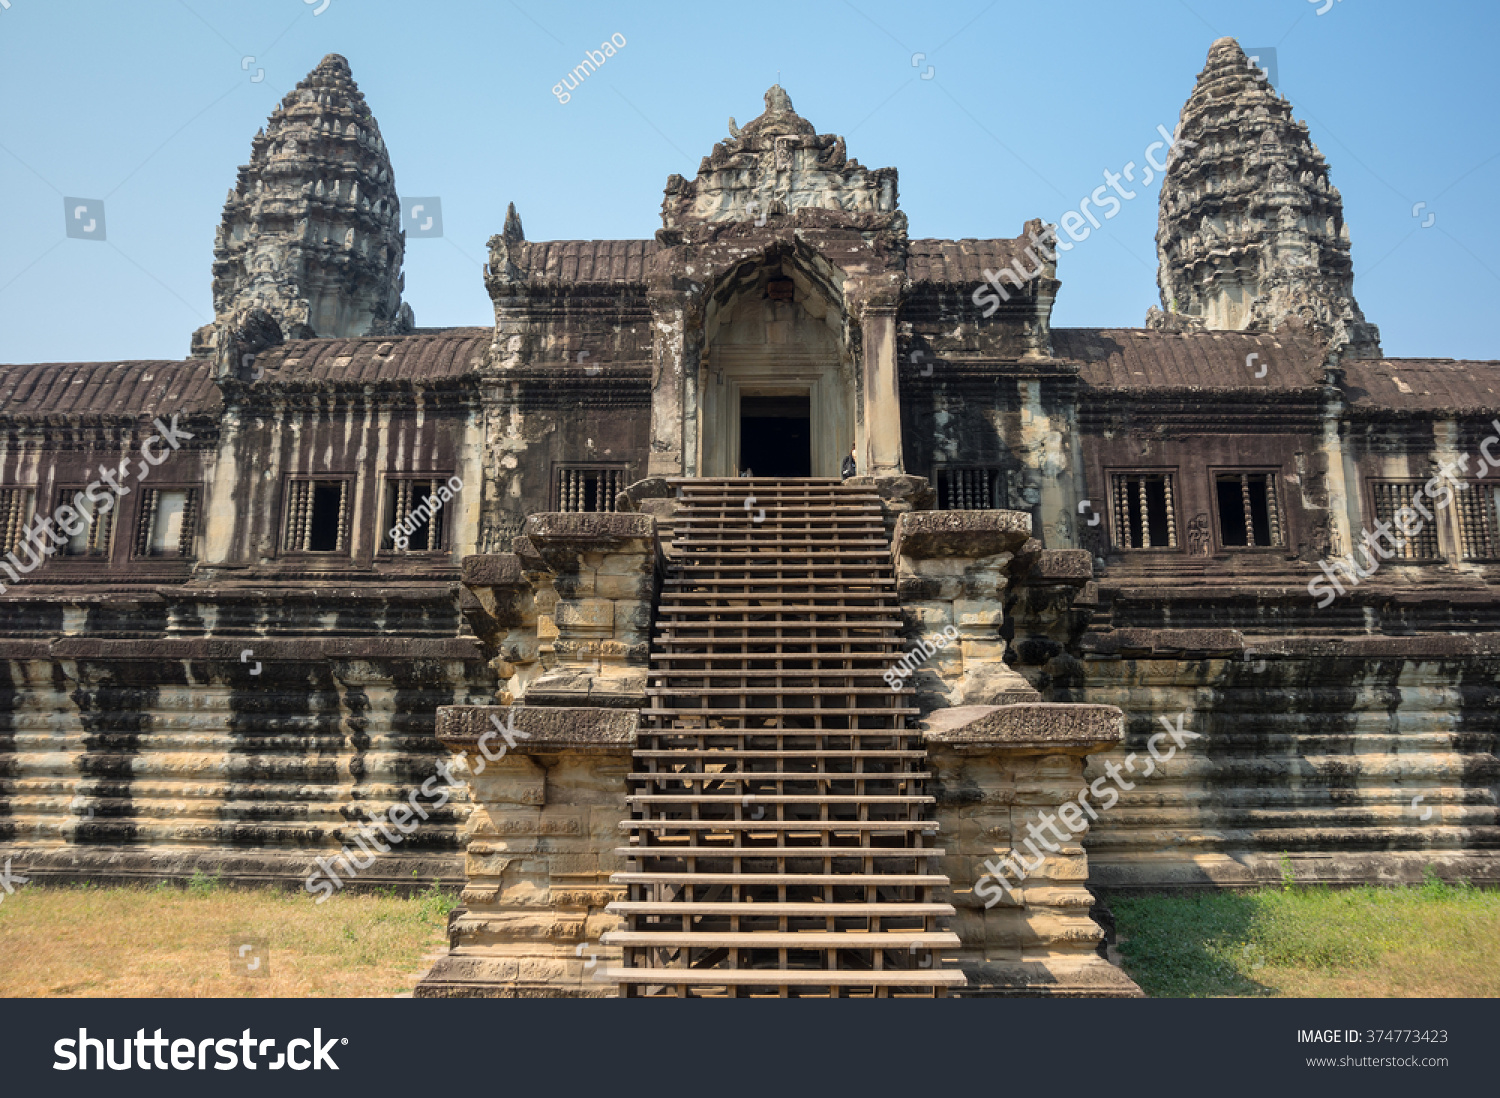 What is wat Angkor Wat is a masterpiece of Asian culture